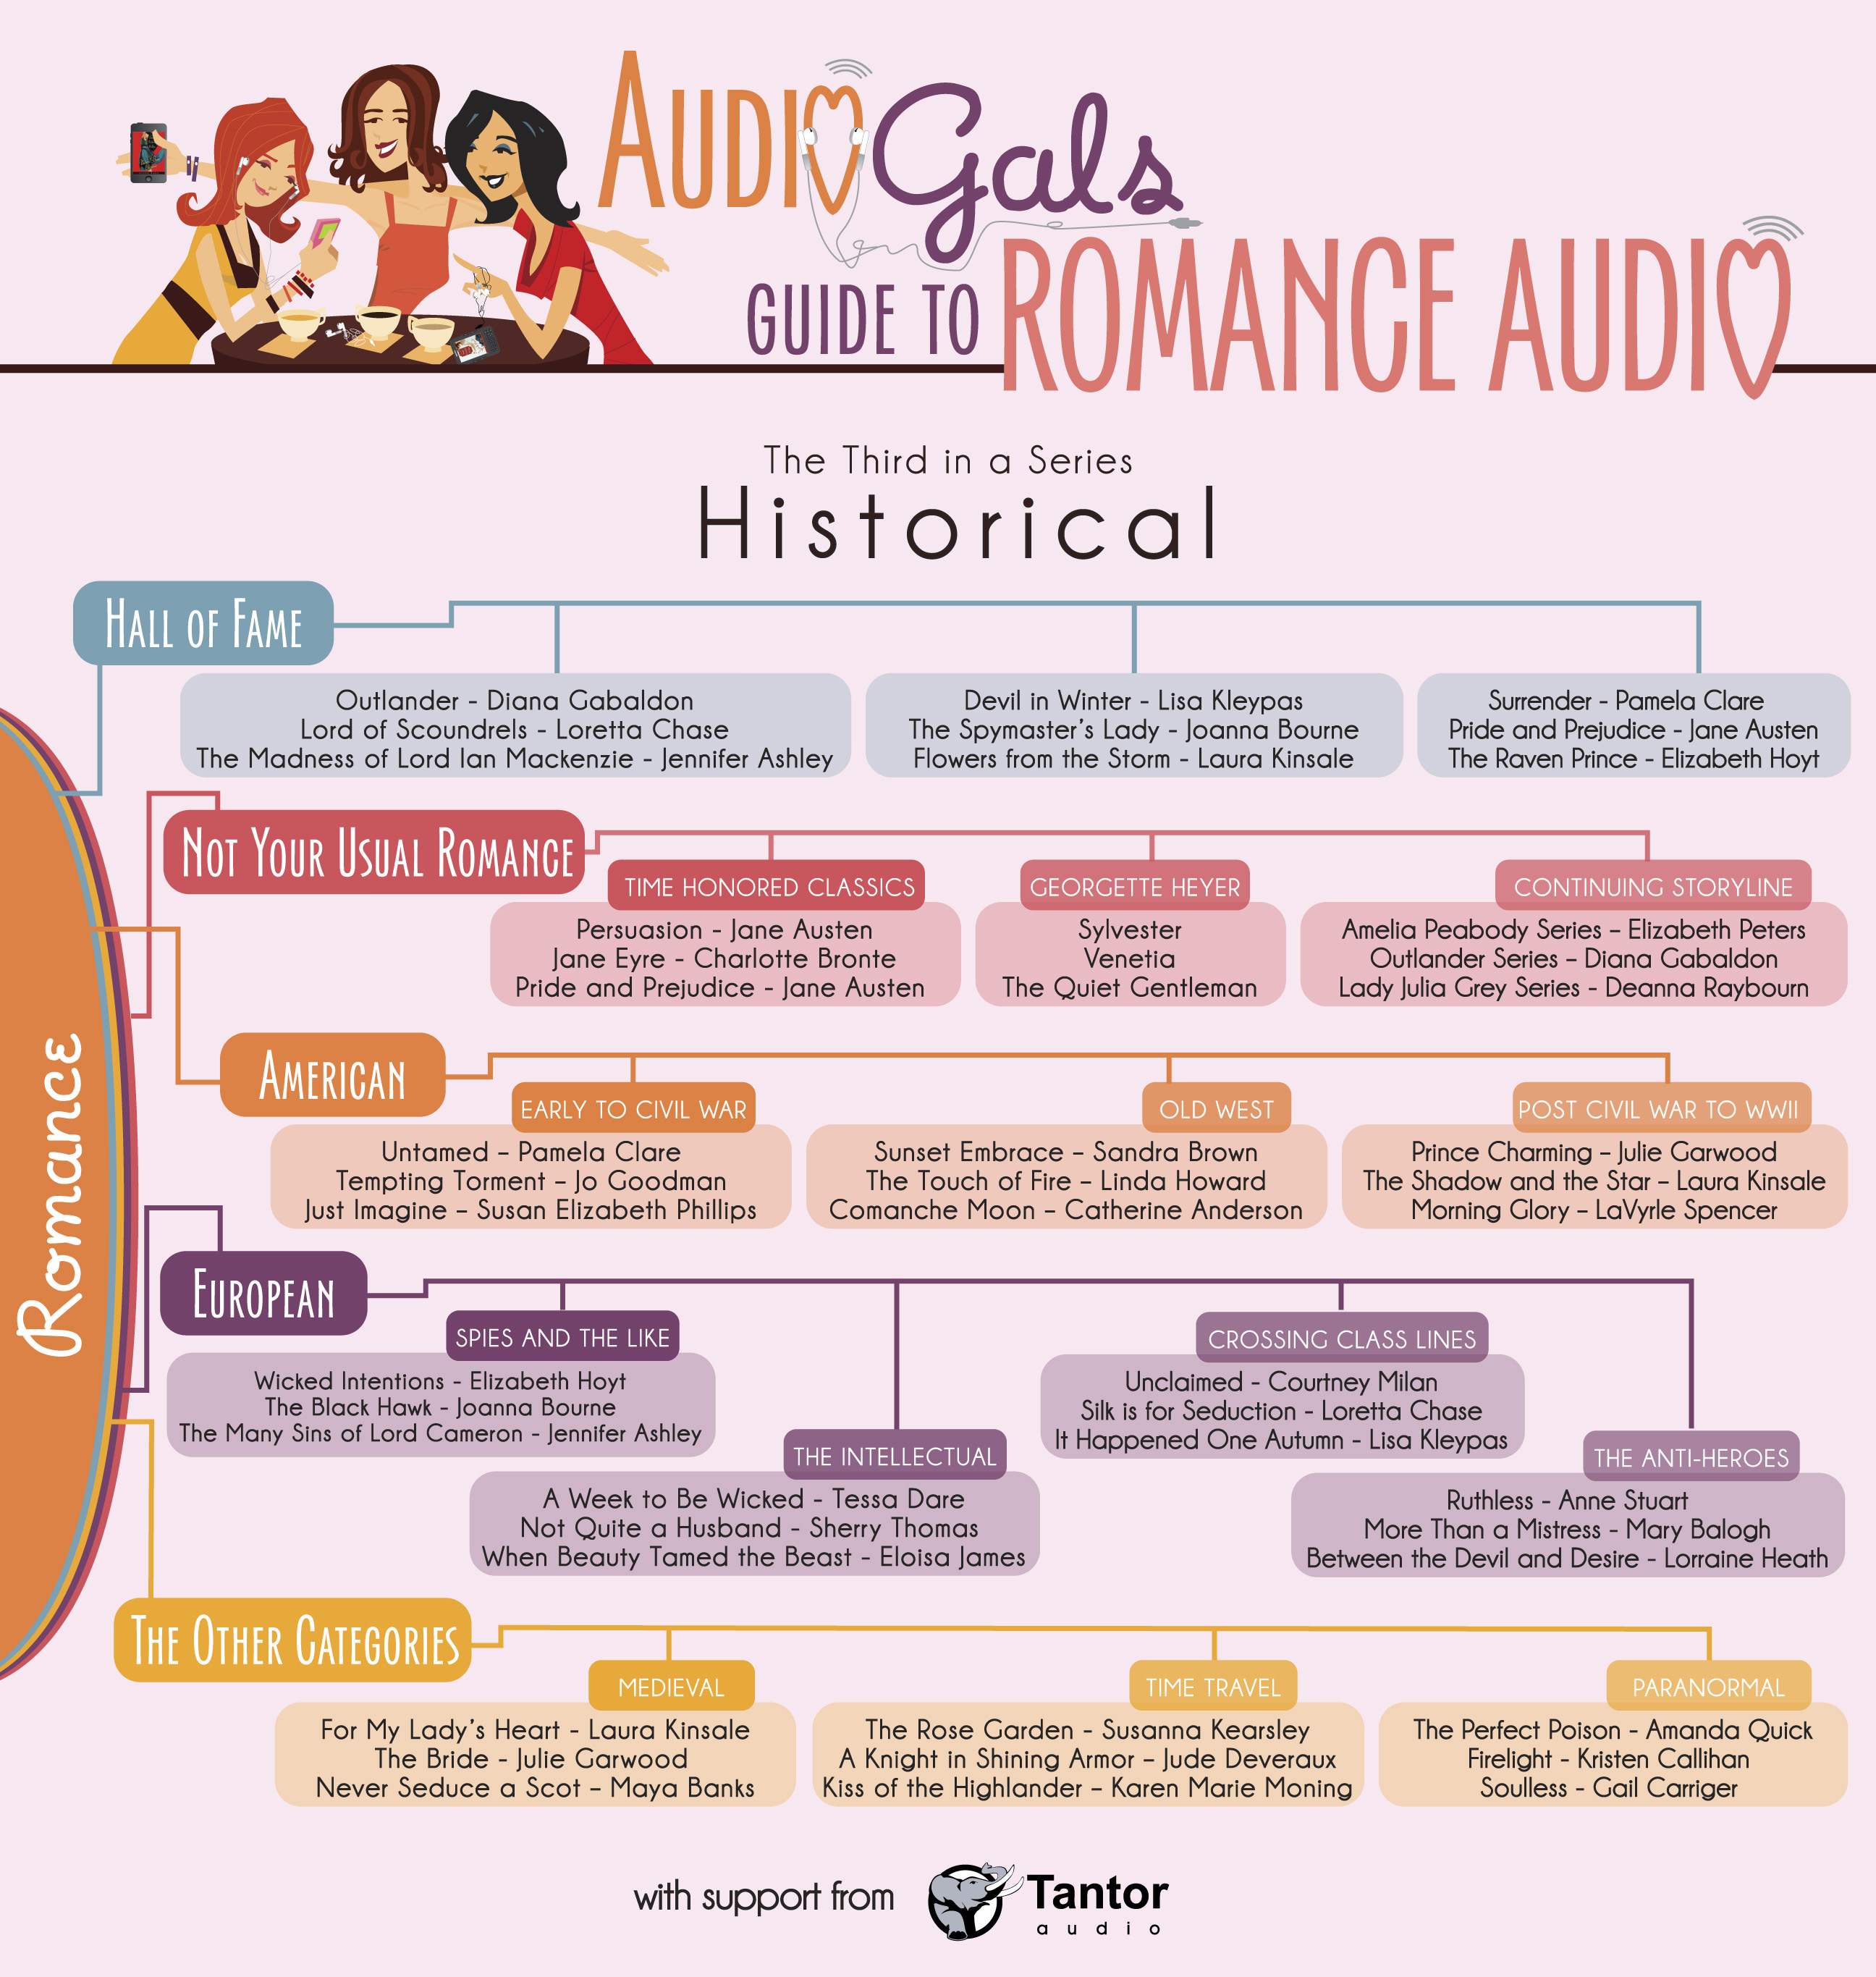 AudioGals Guide To Romance Audio Historical